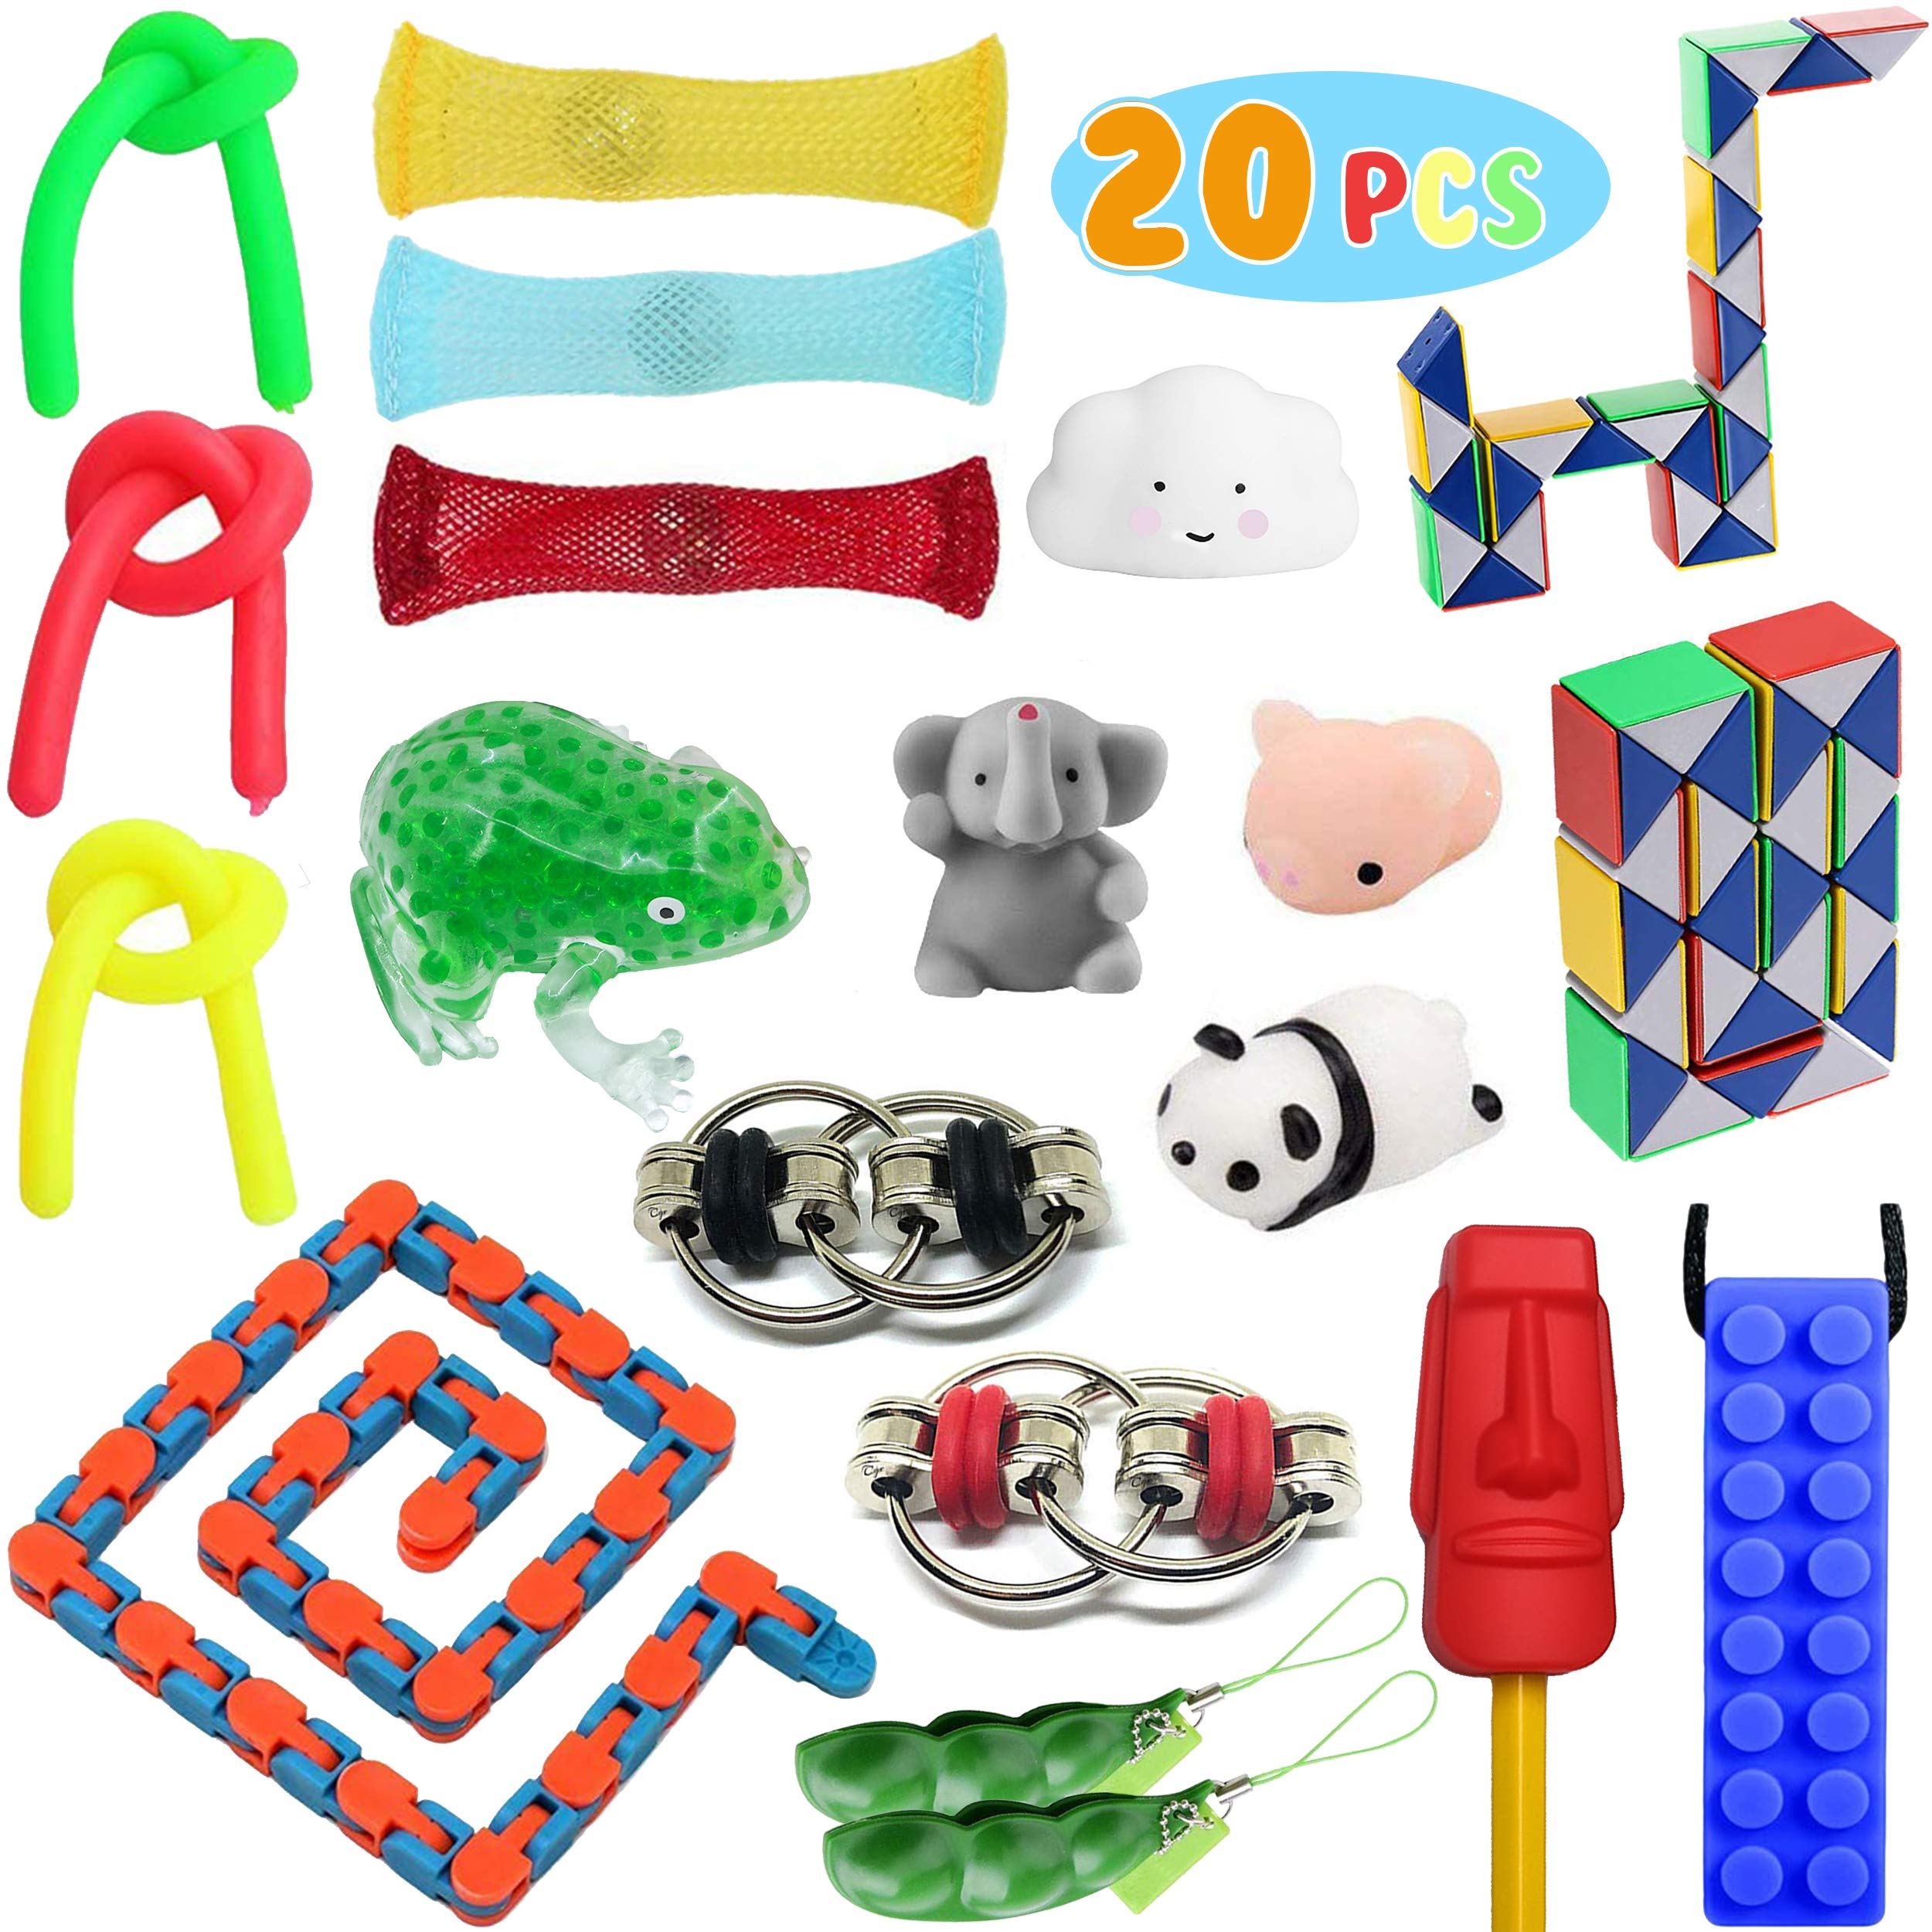 Fidget Toys Set, 20 pcs. Sensory Tools Bundle Stress Relief and Anxiety for Children & Adults. Special Toy Pack Assortment of Chew Necklace, Squeeze Frog,Flip Chains,Squishy Mochi, Marble Mesh & More.